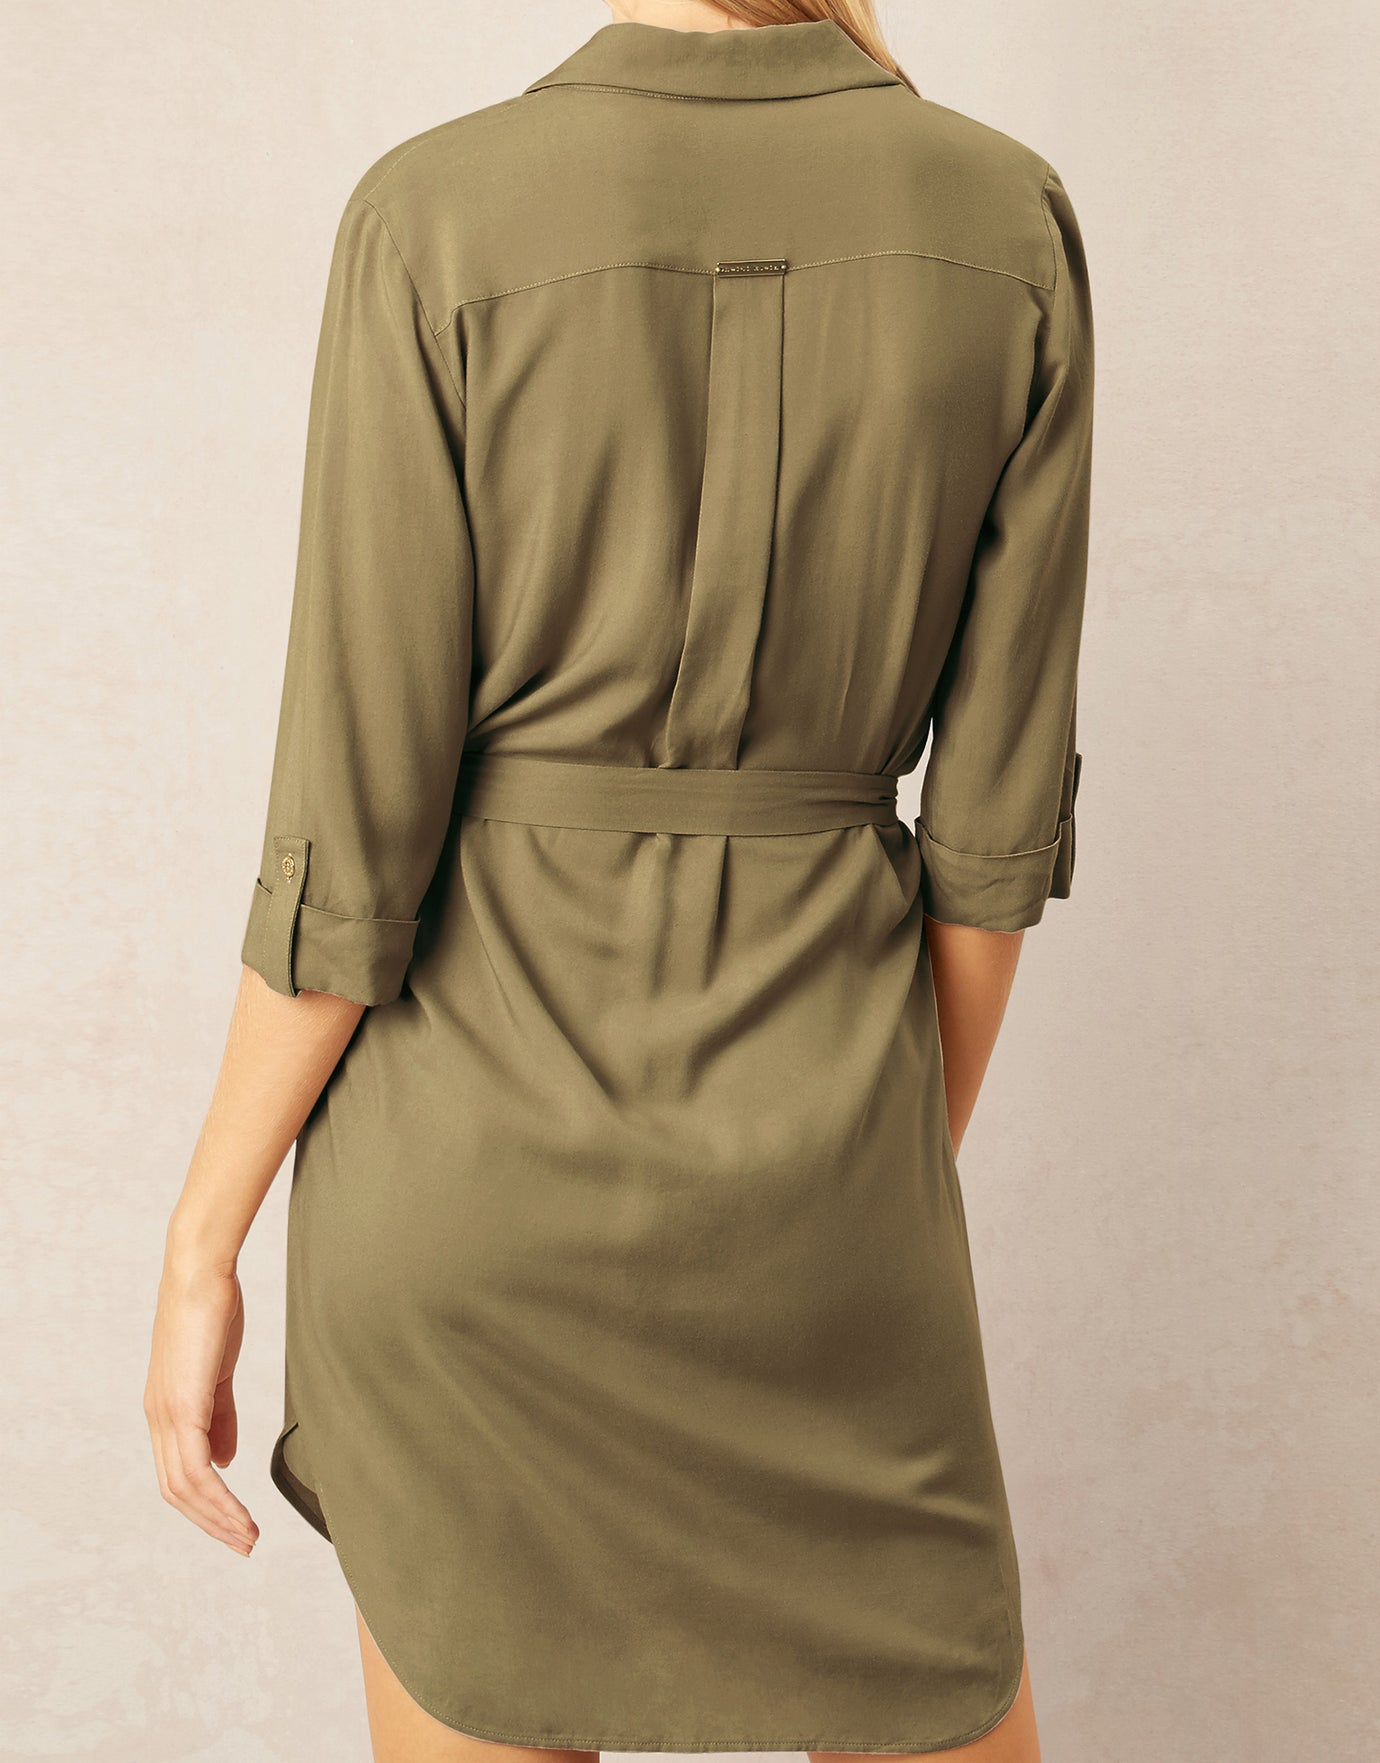 Heidi Klein Venice Relaxed Shirt Dress - Khaki